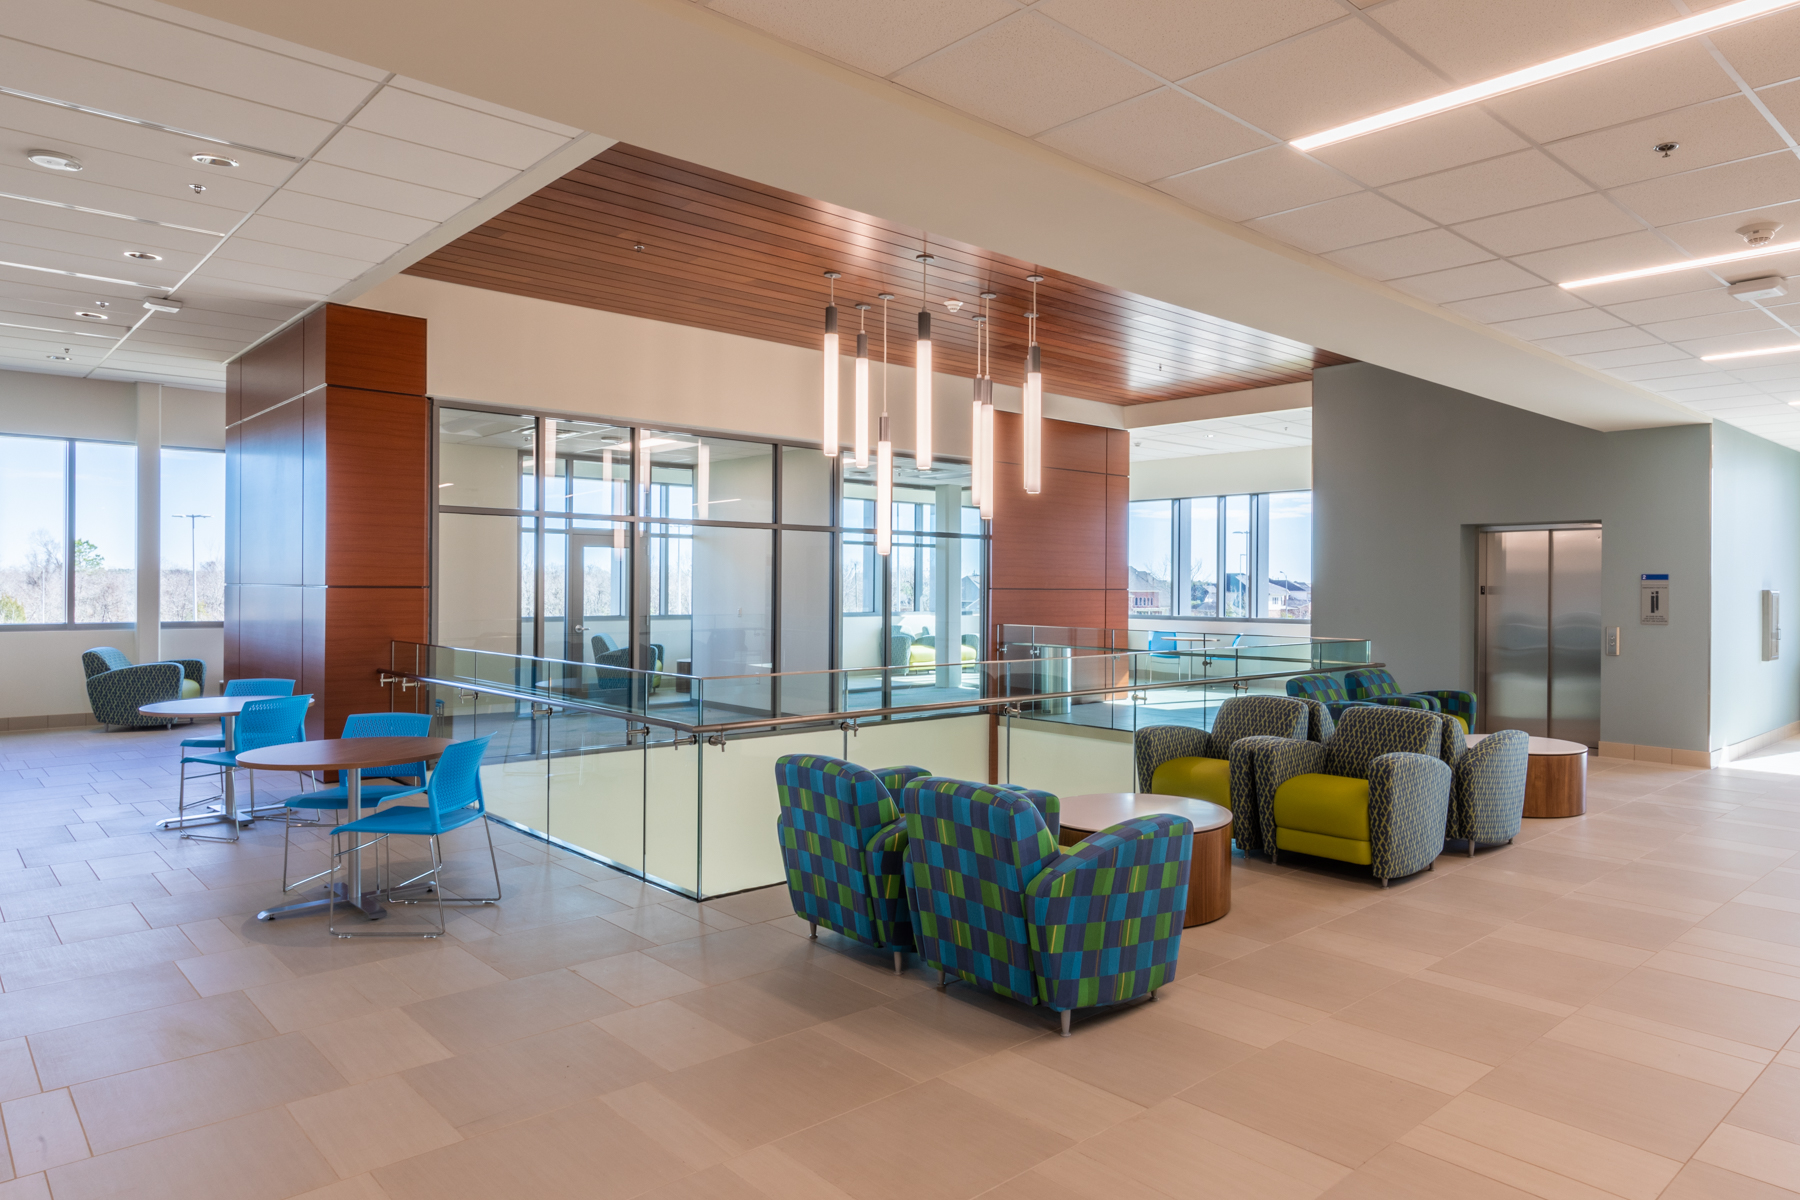 UHCL_Pearland_011019_sm-21.jpg